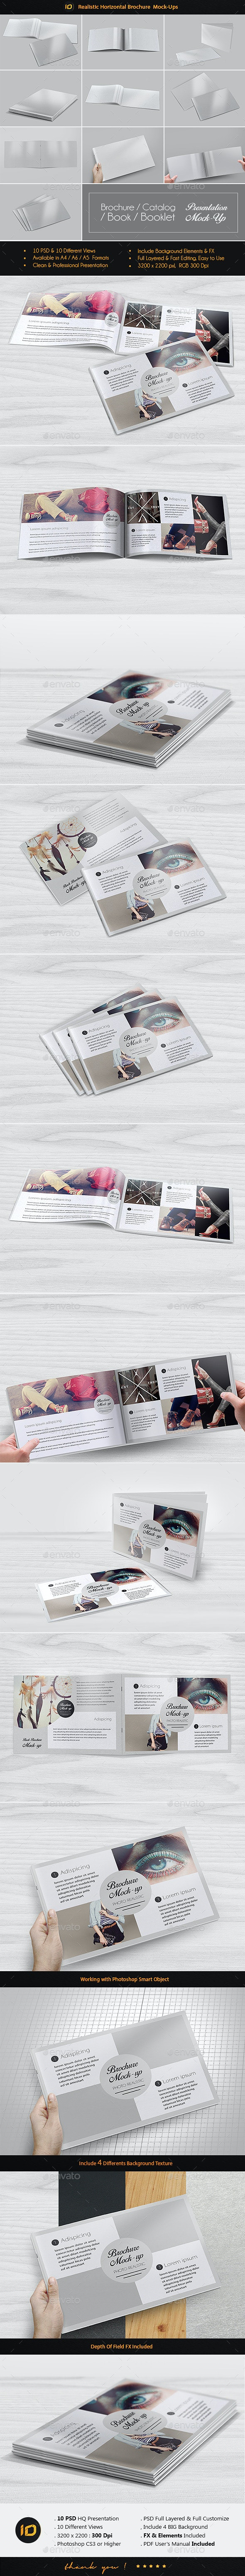 Realistic Horizontal Brochure Mock-Up - Print Product Mock-Ups